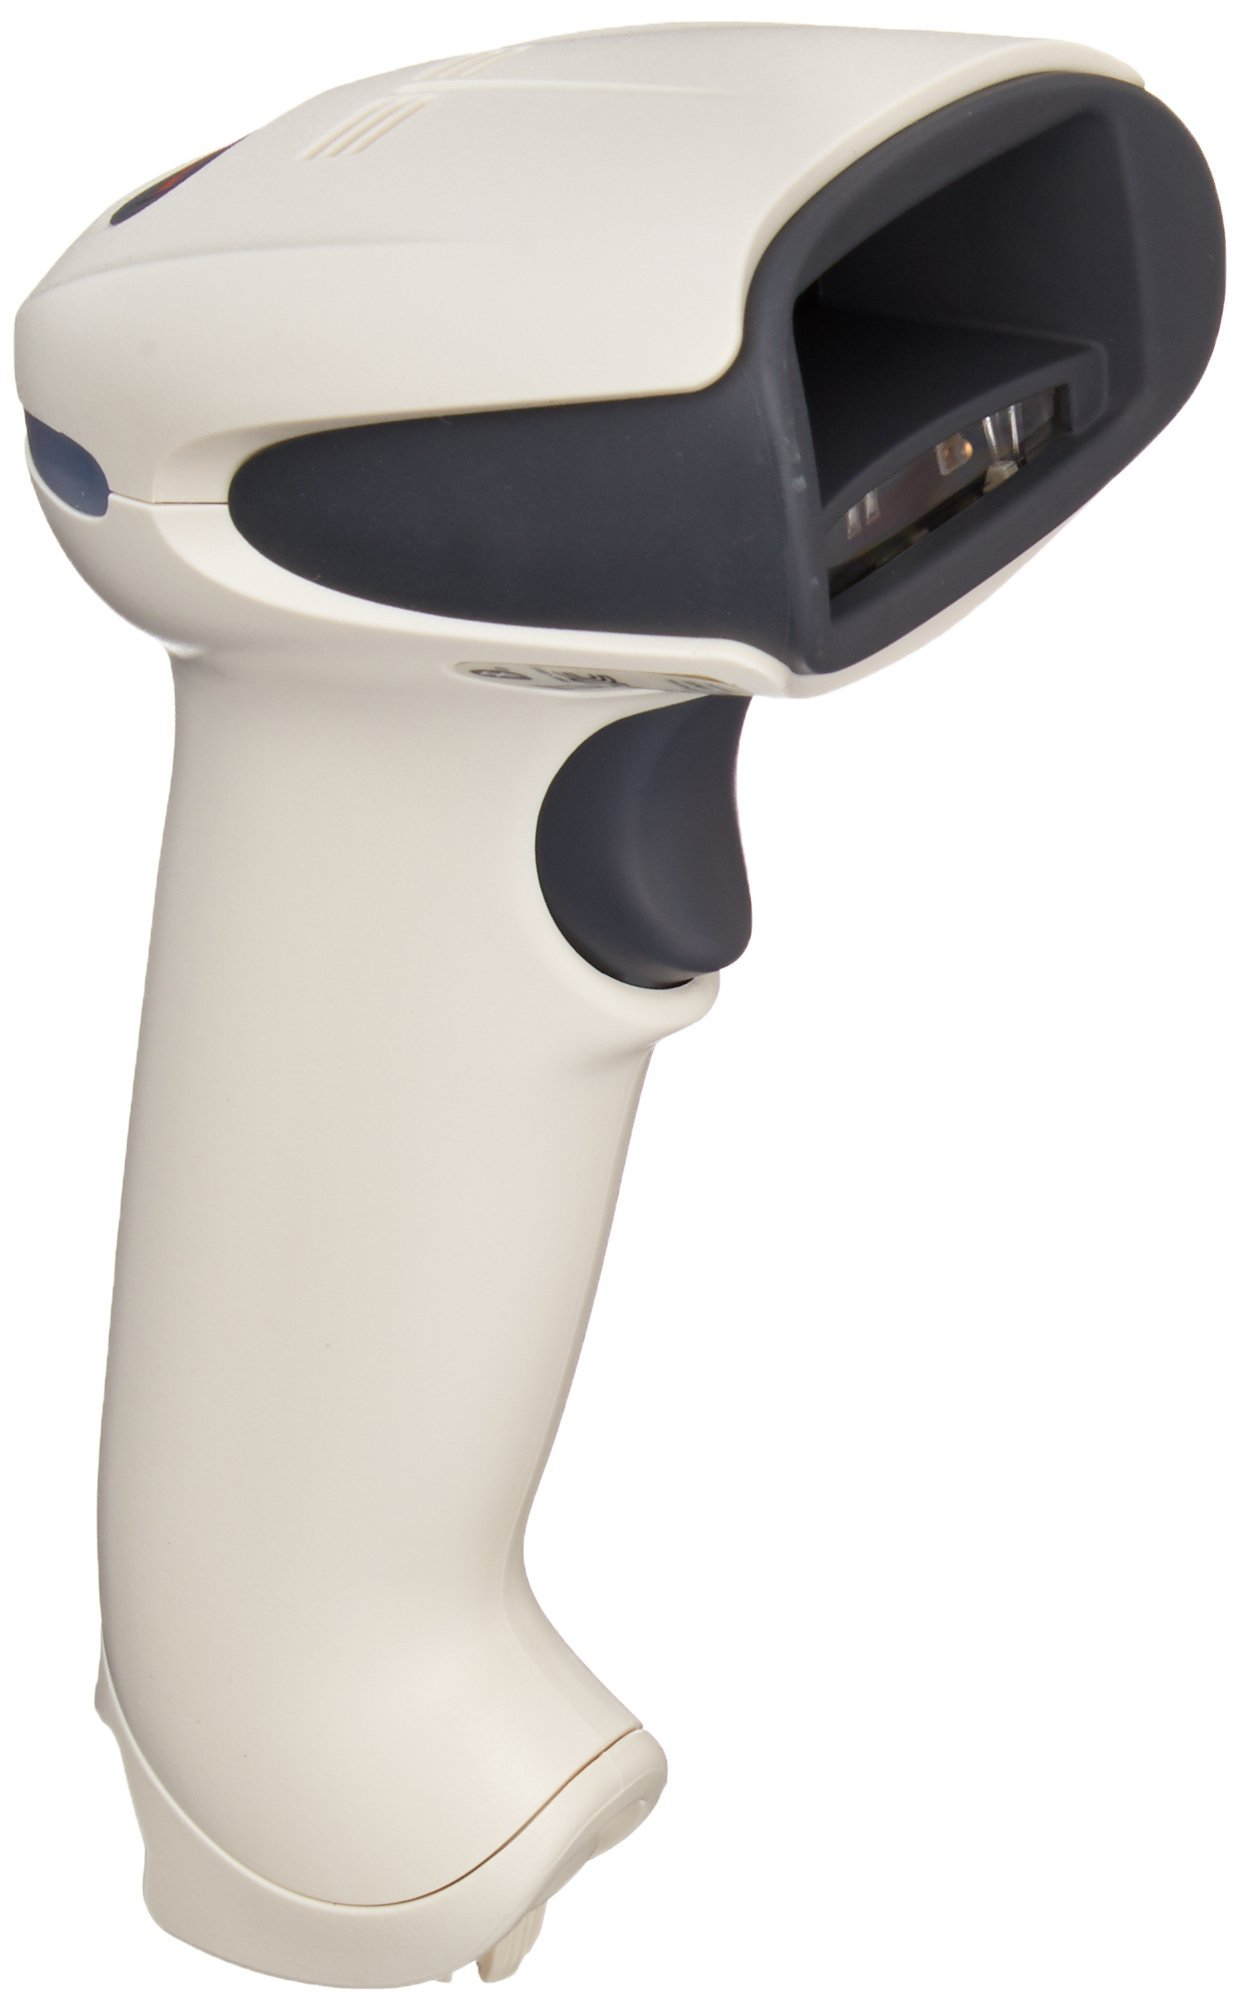 Honeywell 1902HHD-0USB-5 Xenon 1902h Cordless Handheld 1D and 2D Barcode Reader for Healthcare Applications, High-Density Focus, White